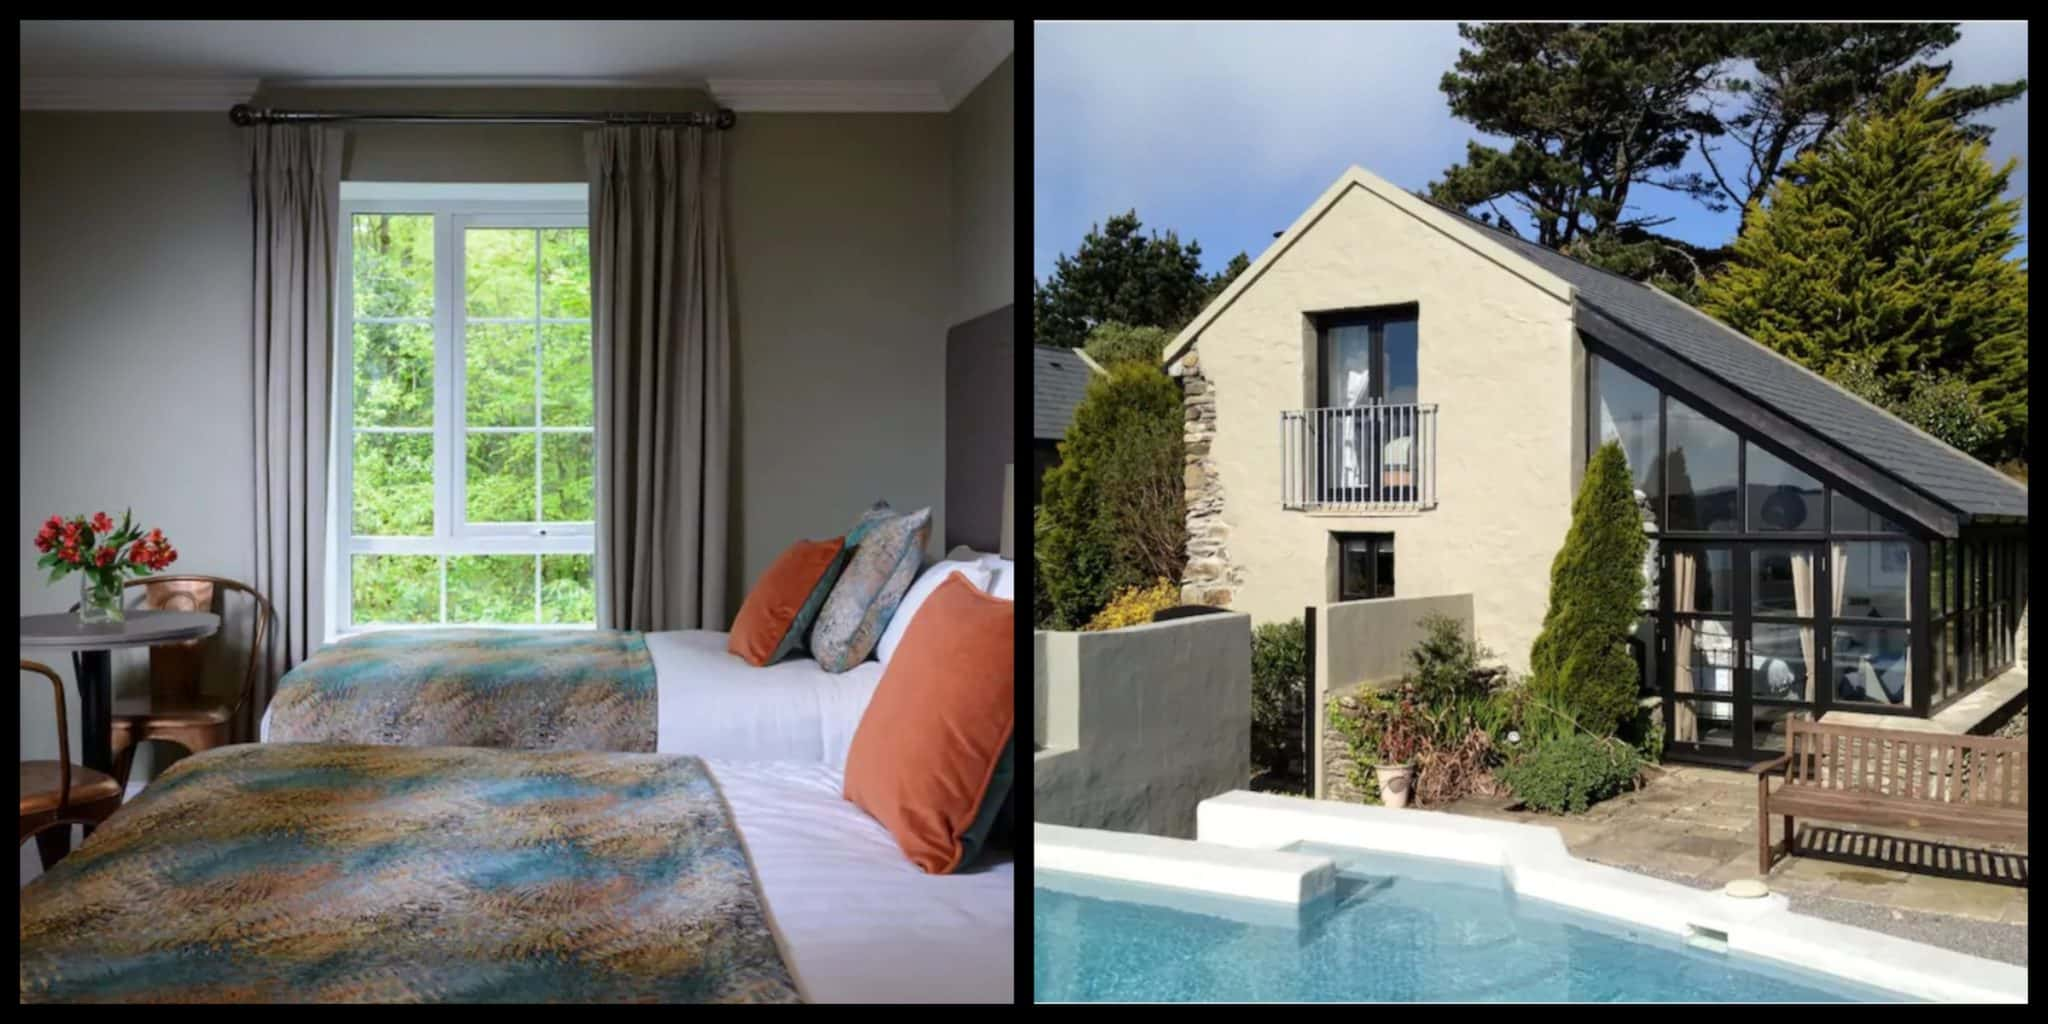 Top 10 Incredible Airbnbs In Ireland With Swimming Pools